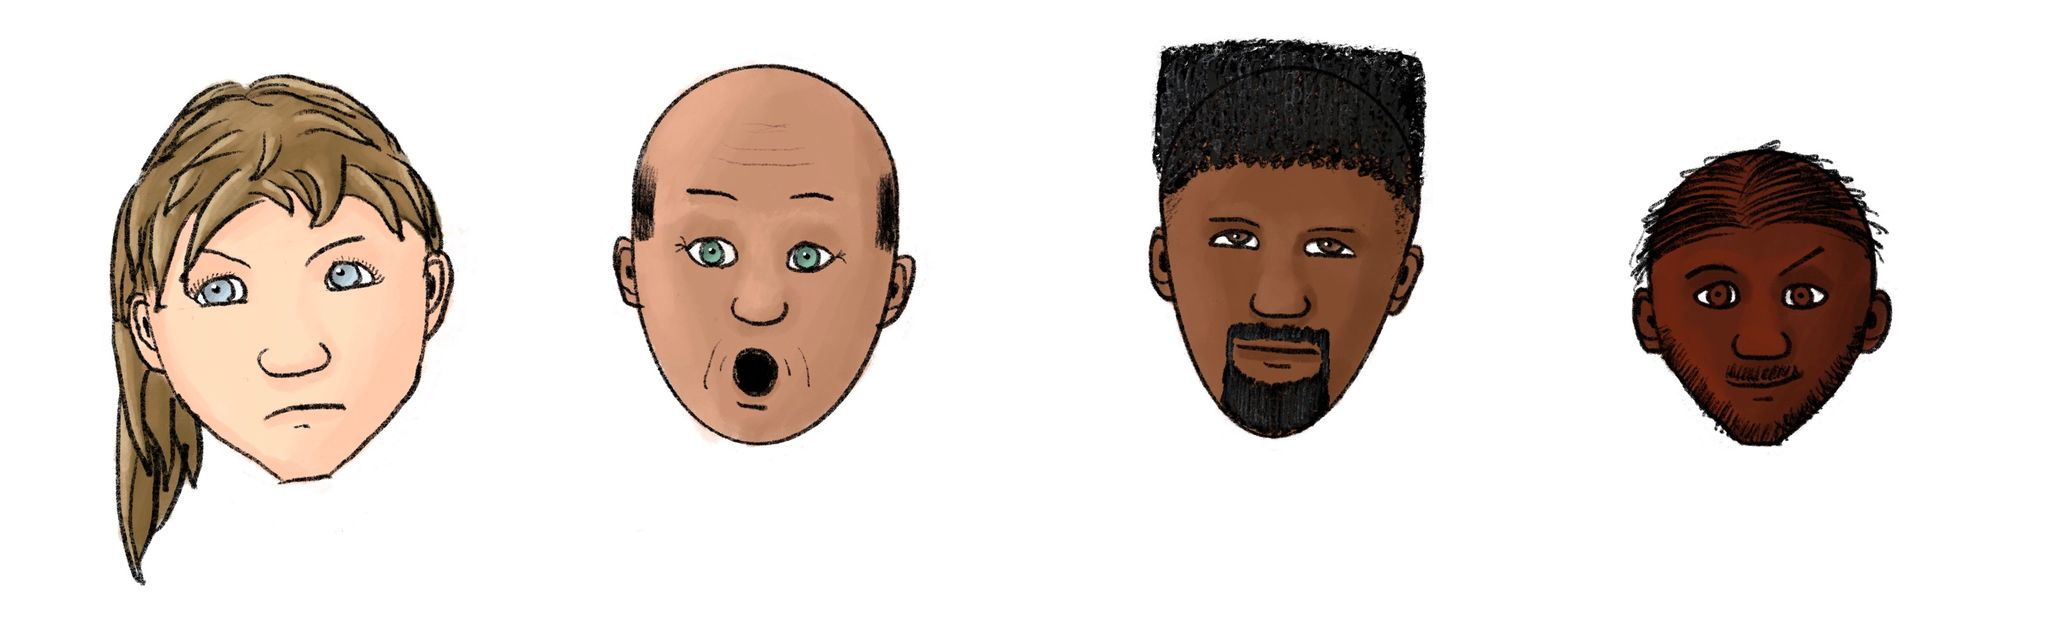 Four cartoon-style heads: a white girl with long blonde hair looking unimpressed, a bald Asian man looking shocked, a black man with big hair and a goatee looking sleepy, and an Indian man smirking with one eyebrow raised.